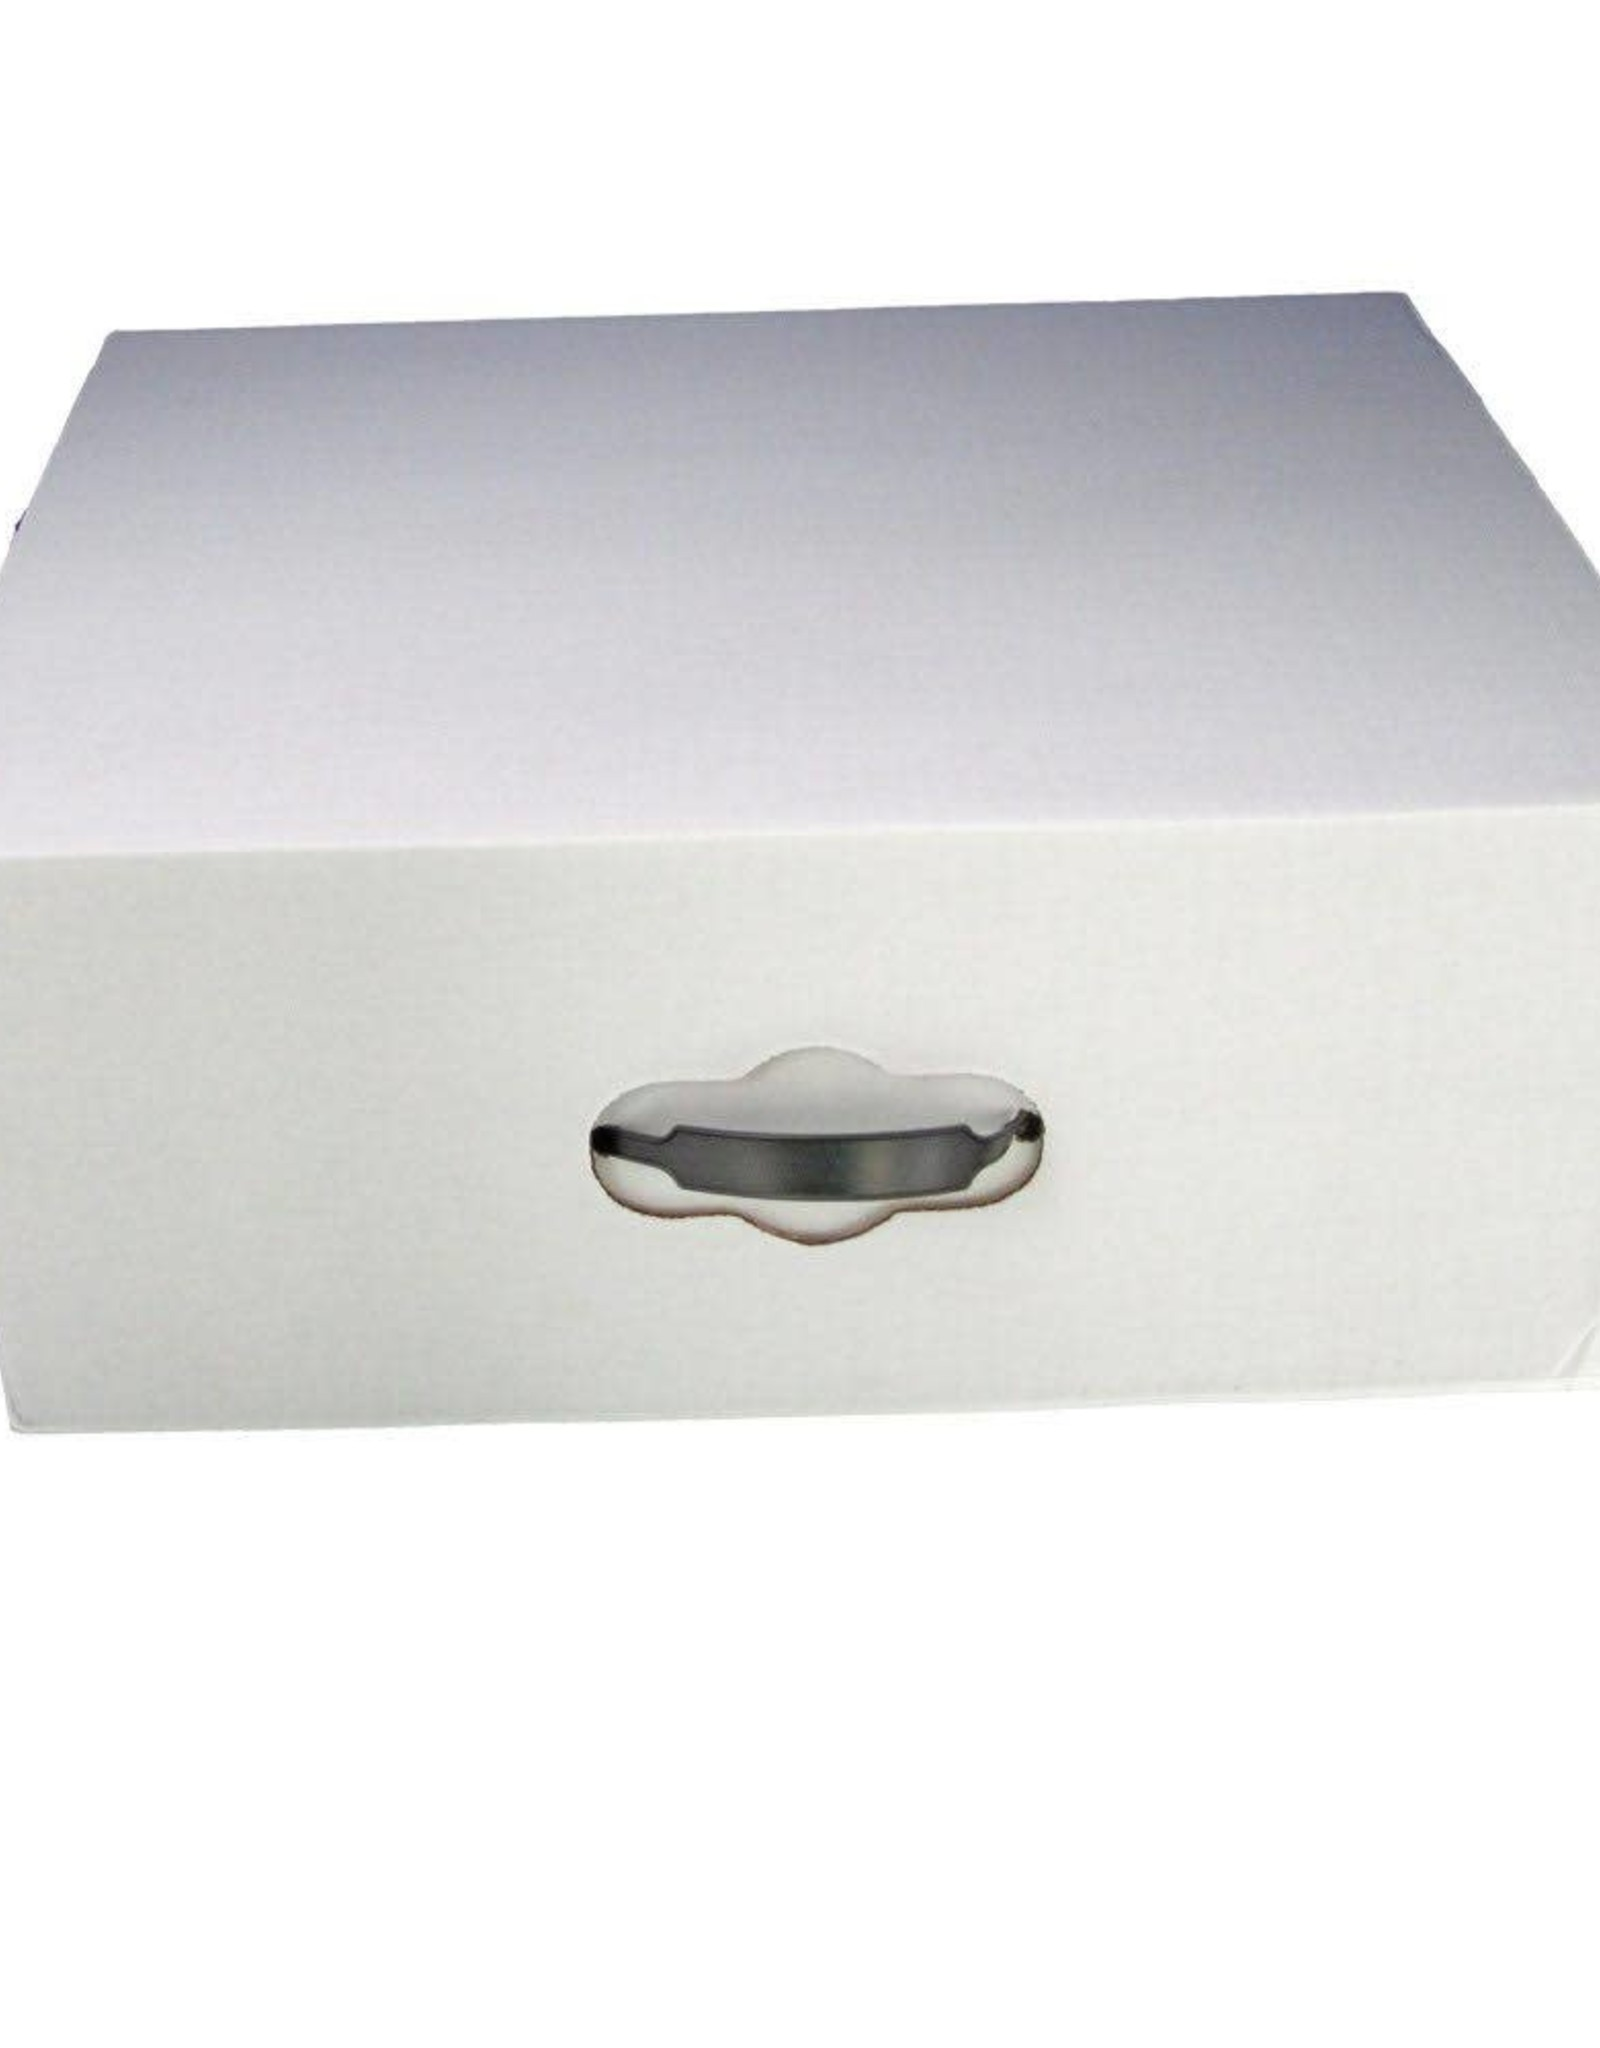 Hat Box With Handle